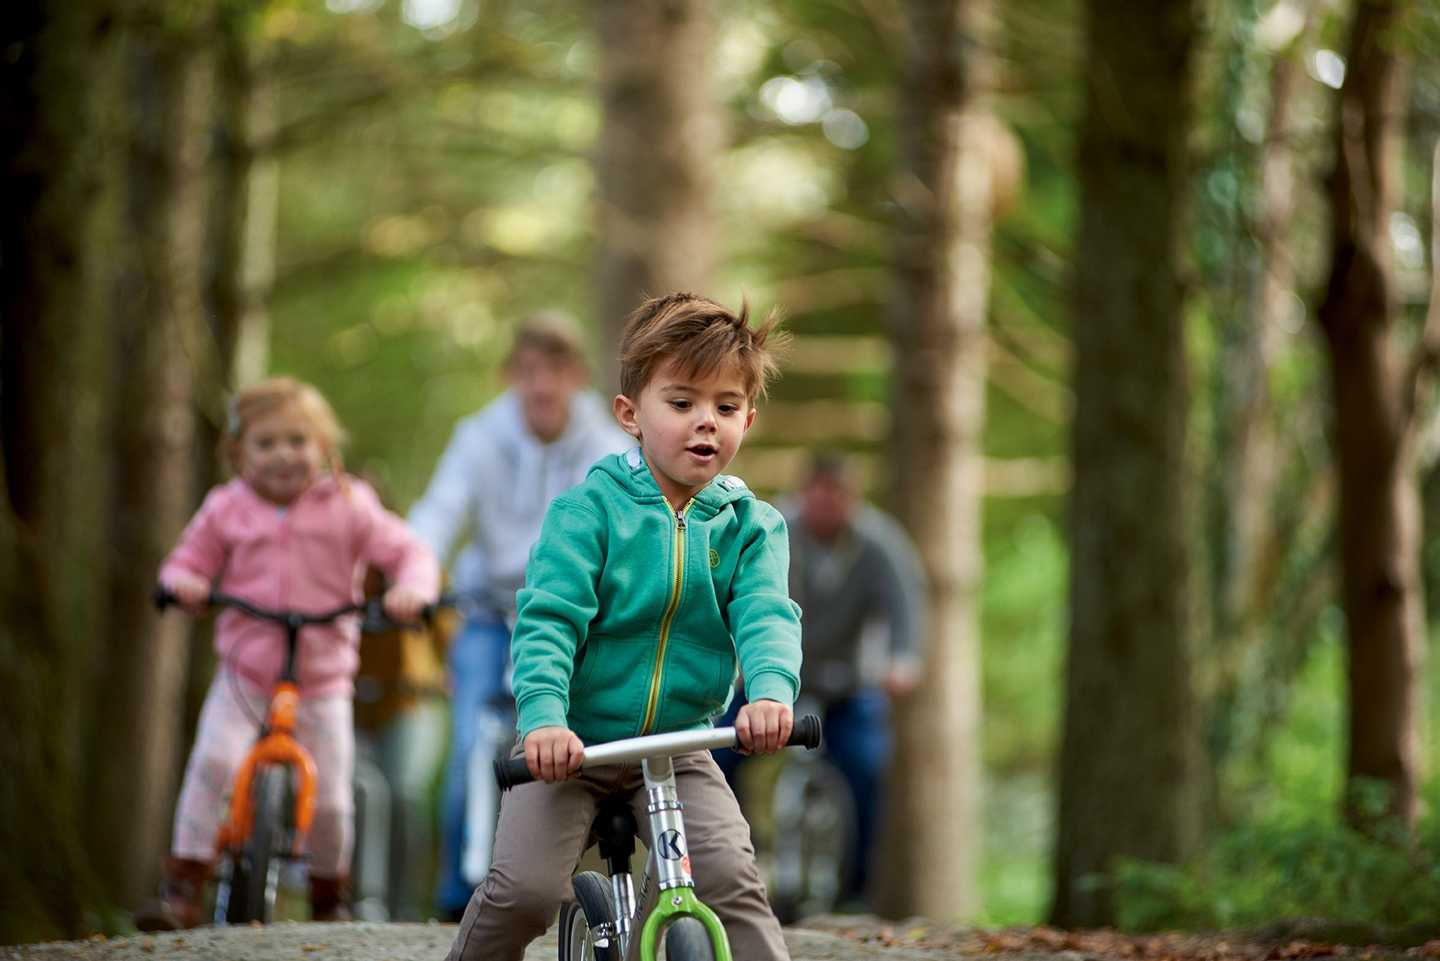 A family having a bike ride through the woods